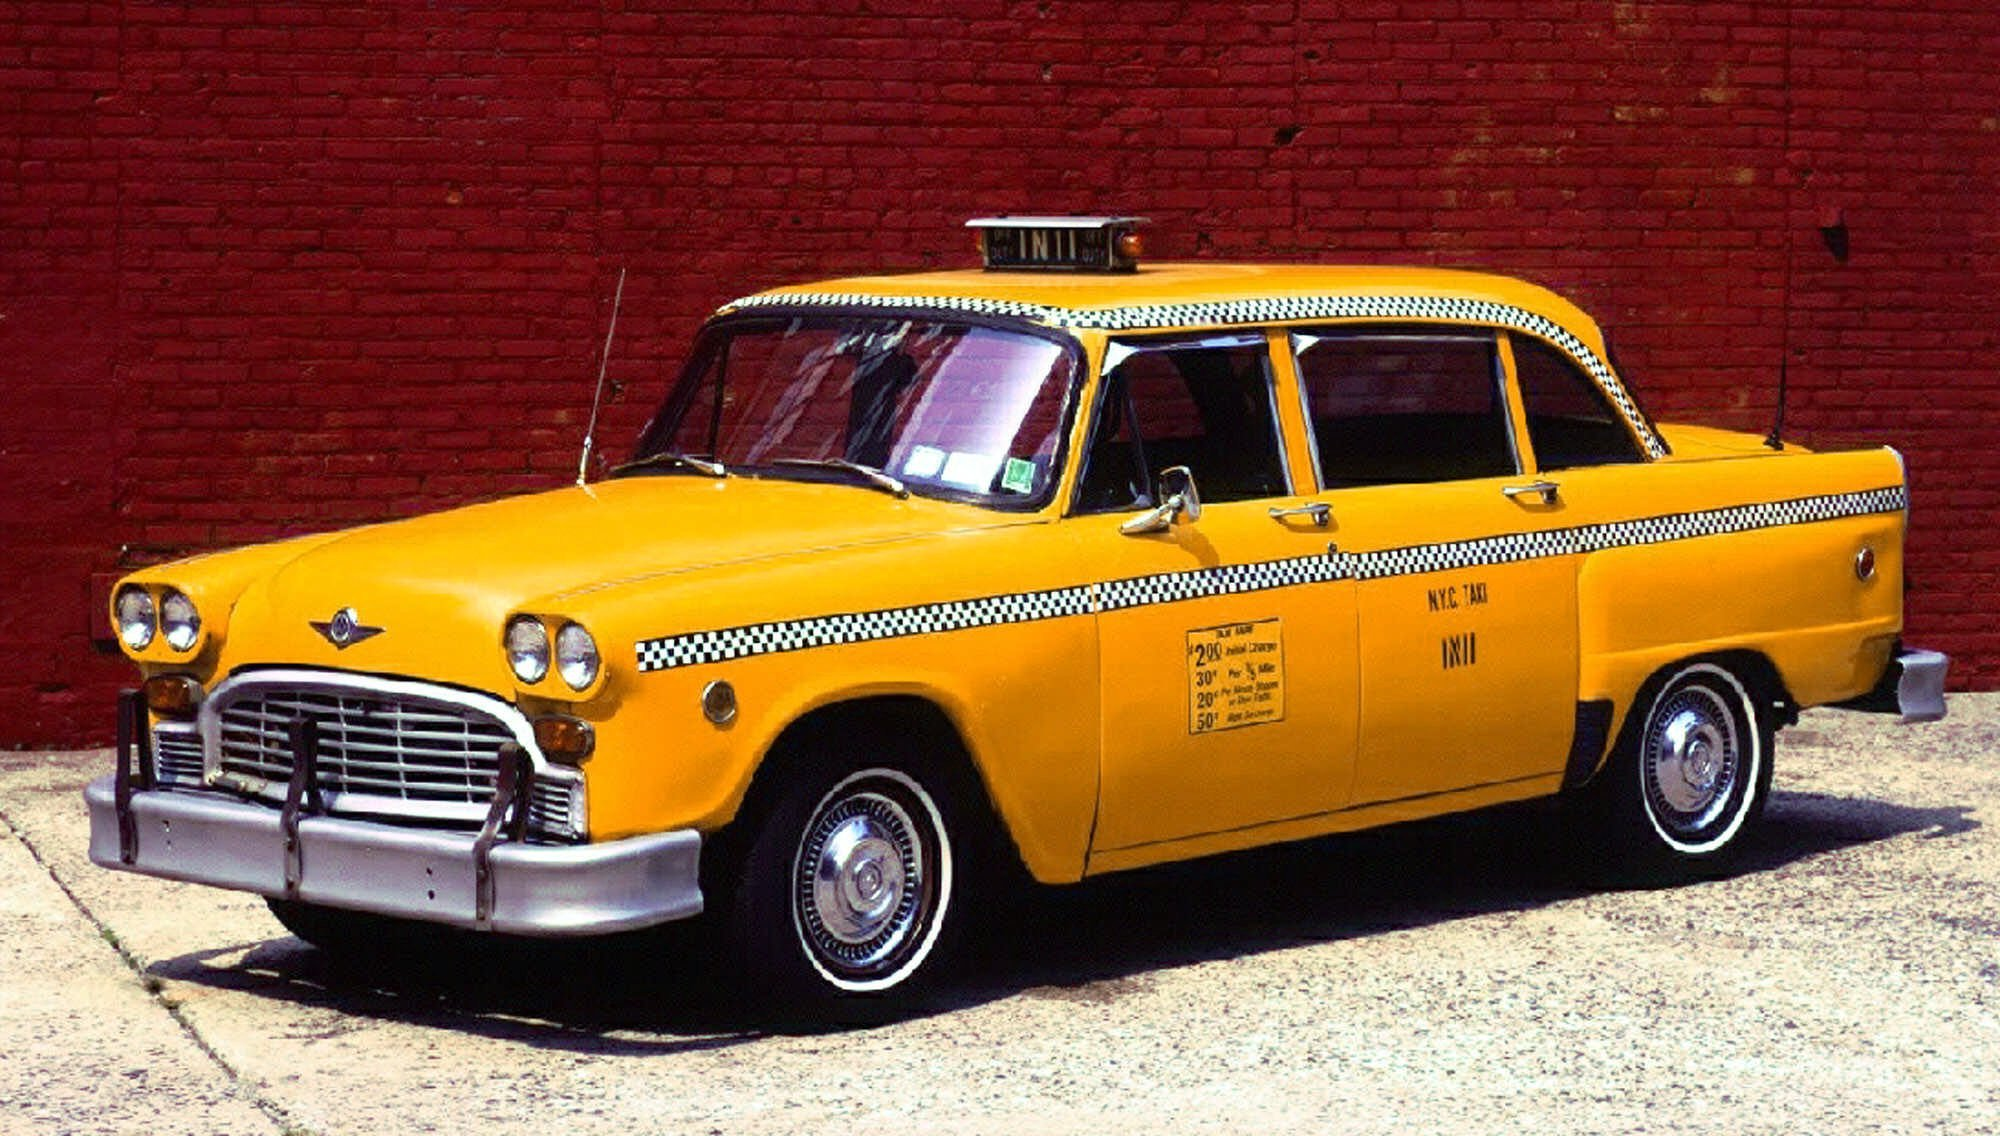 Mutod The Checker Cab Brocast News